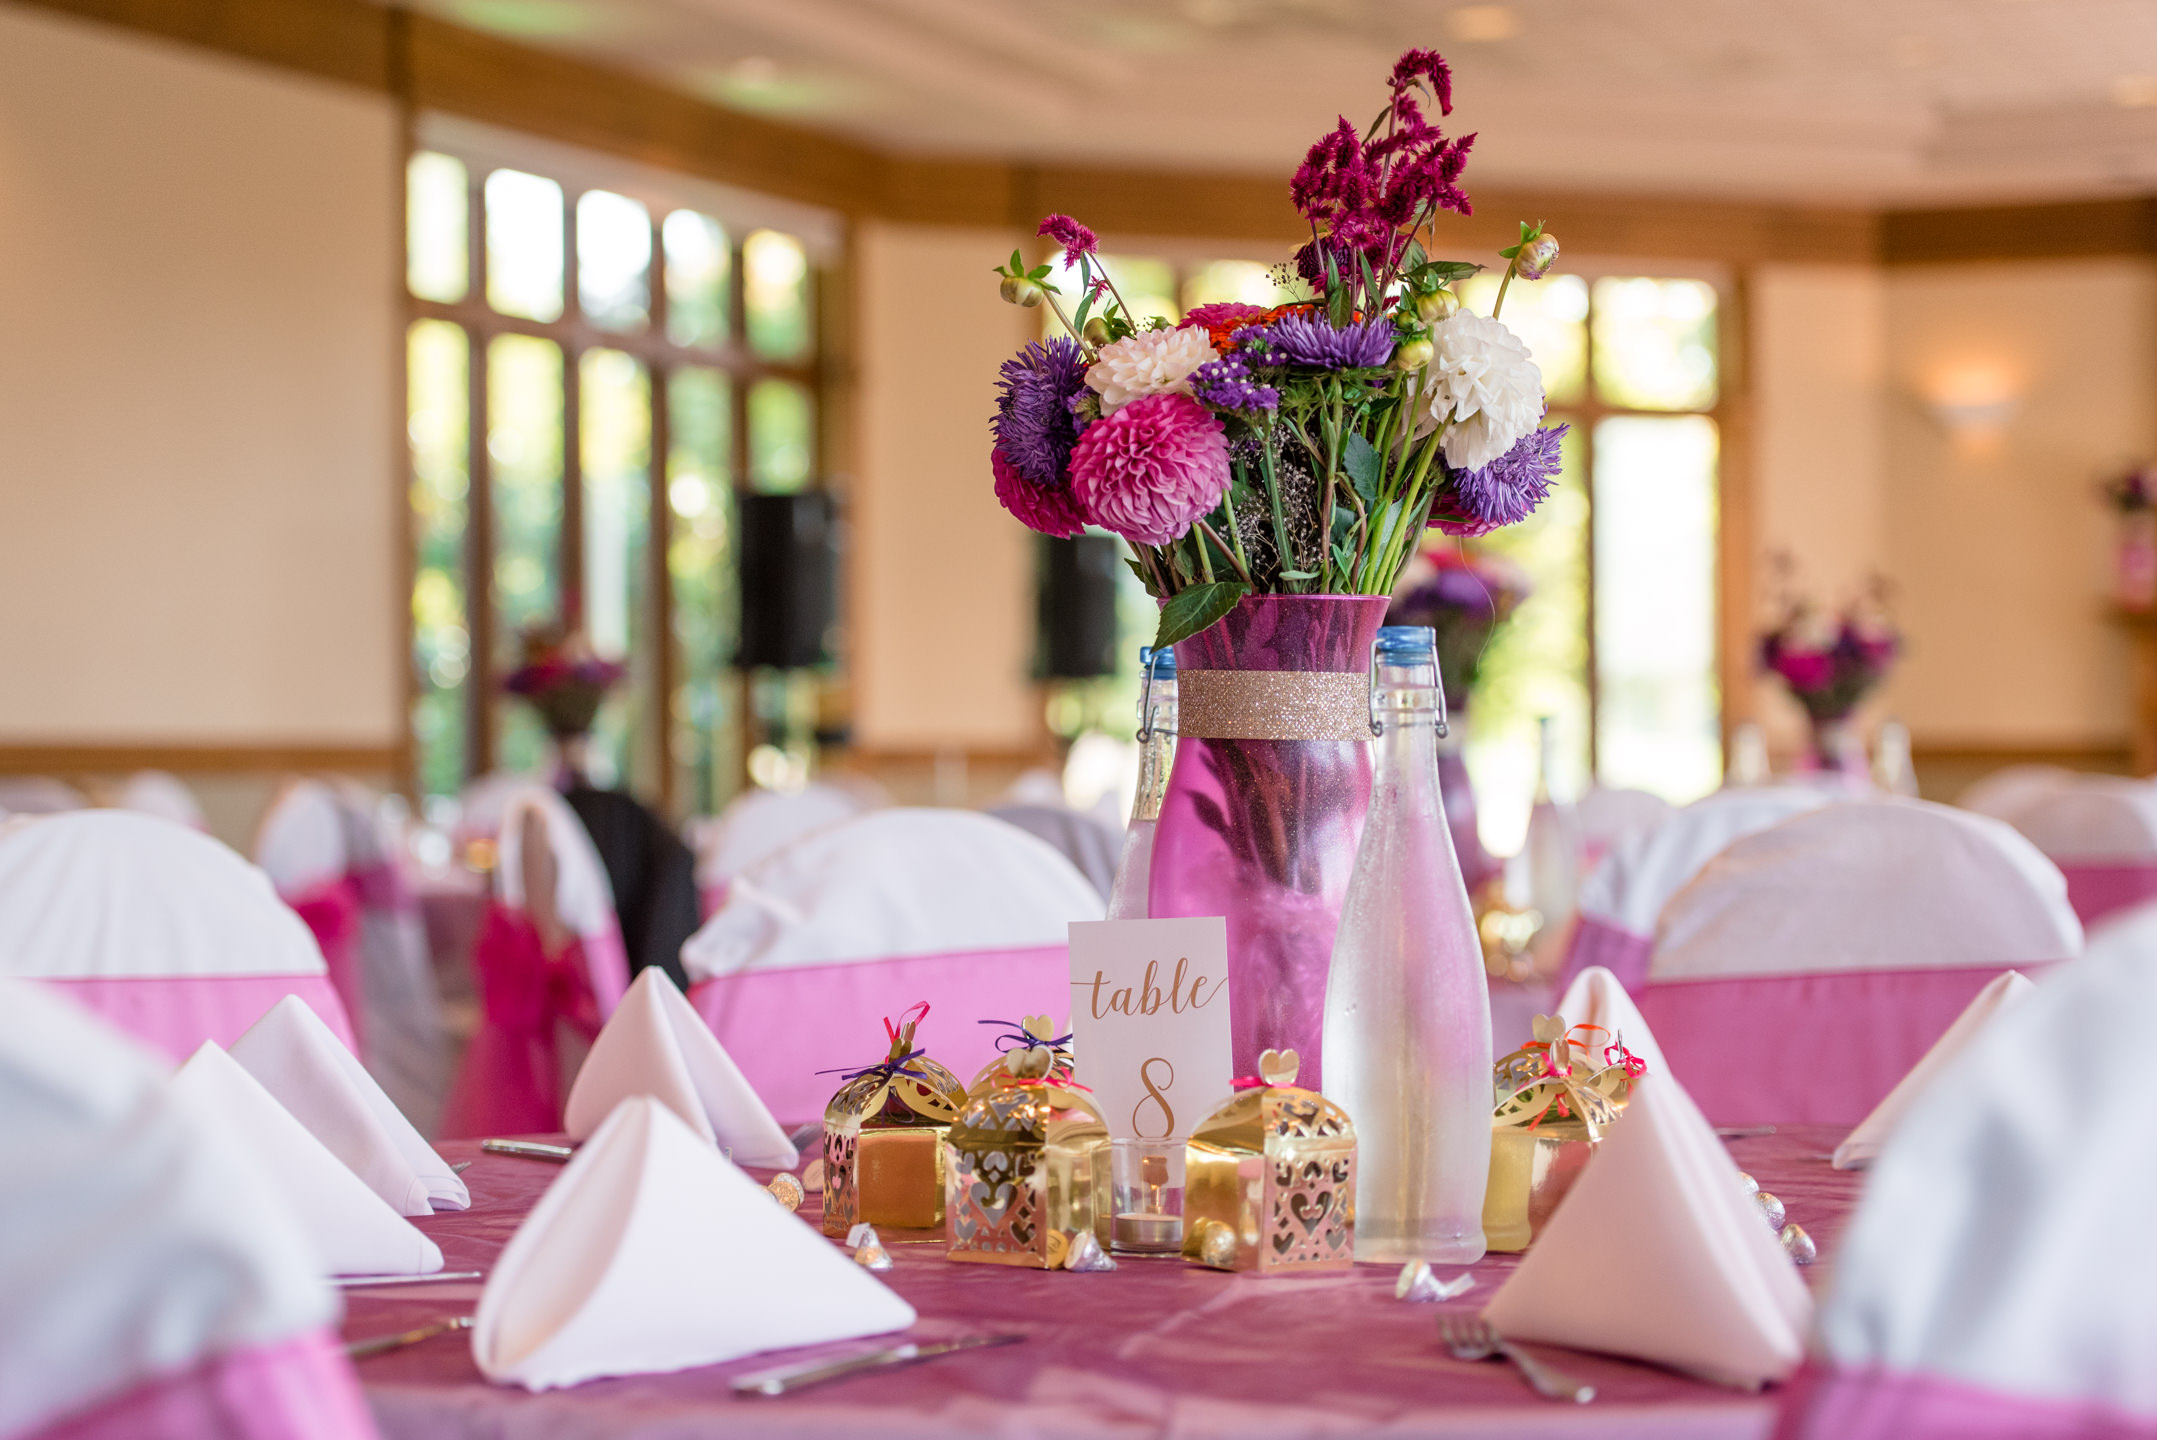 Table Centerpiece Wedding Details at Echo Falls Golf Course